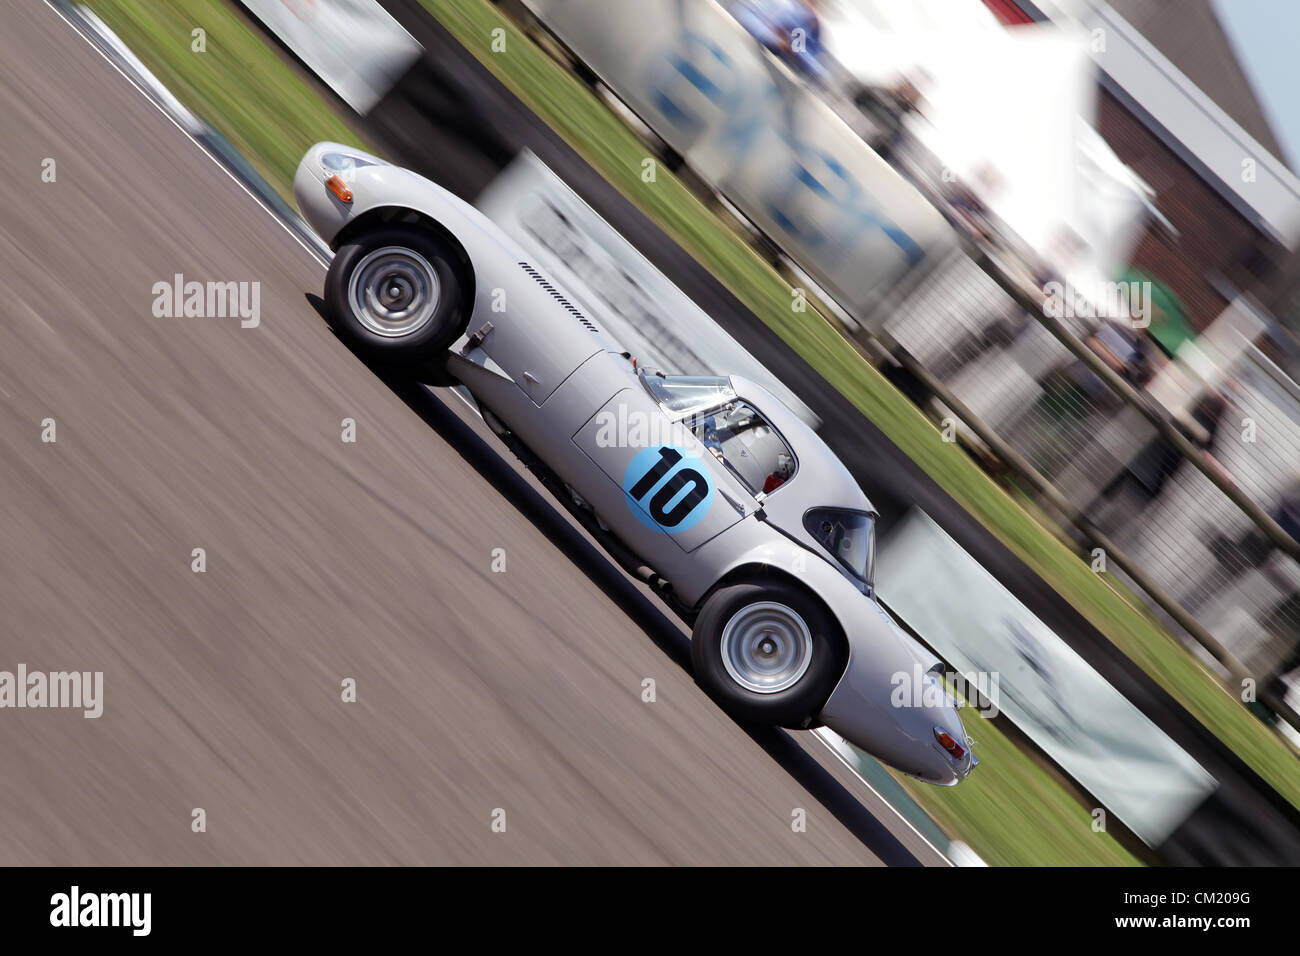 Goodwood Estate, Chichester, UK. 15th September 2012. Ludovic Lindsay driving a 1961 Jaguar E-type lightweight during - Stock Image